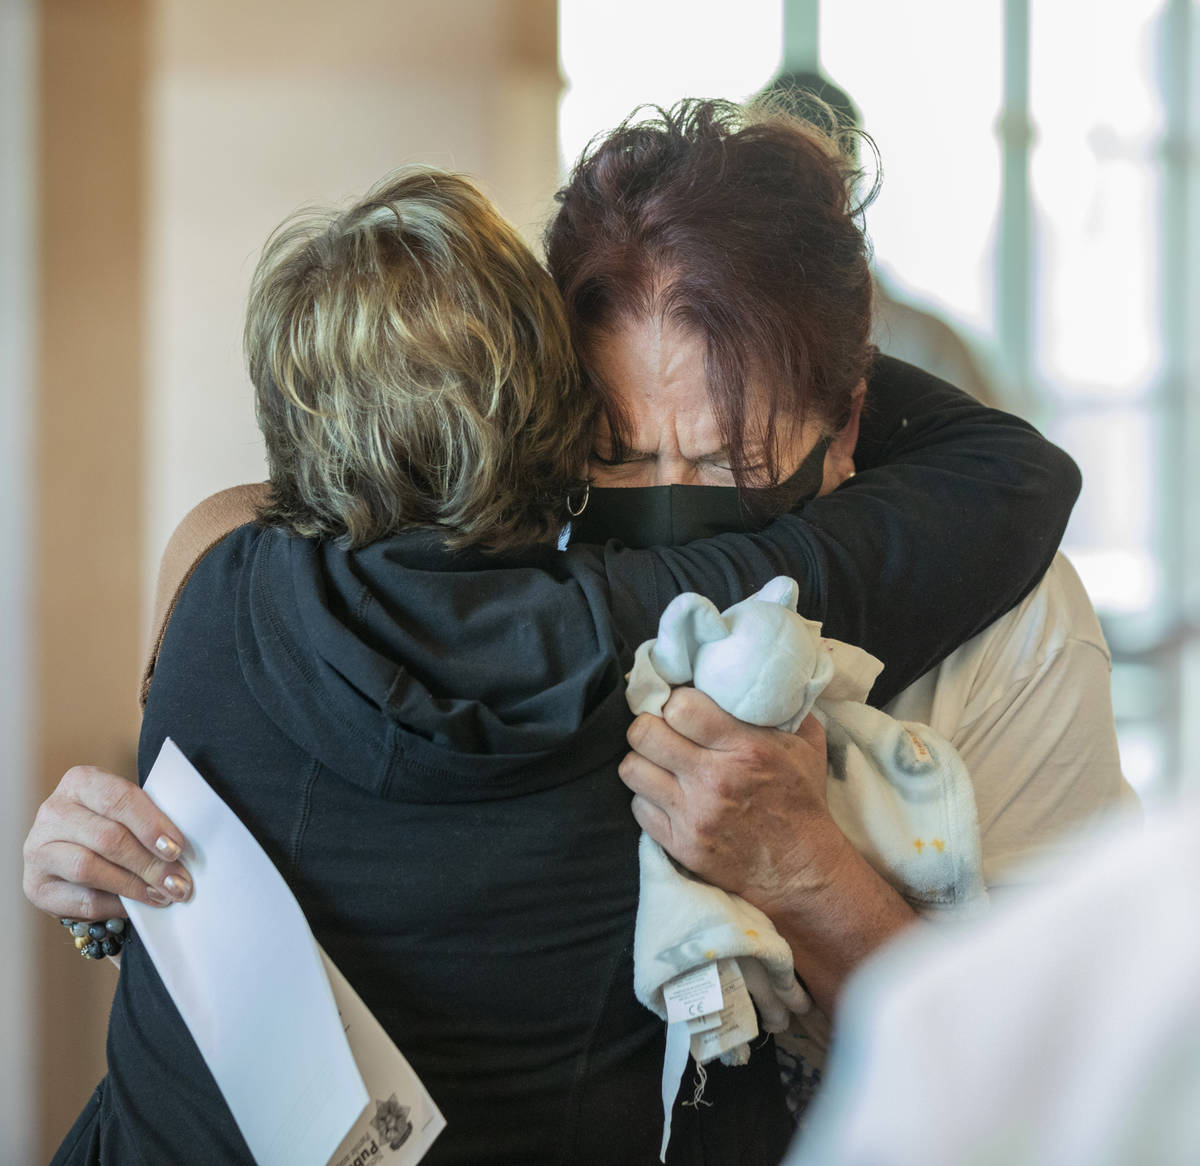 Lauren Prescia's grandmother Lois Prescia, left, and mother Kelly Nyman, hug after Lauren Presc ...